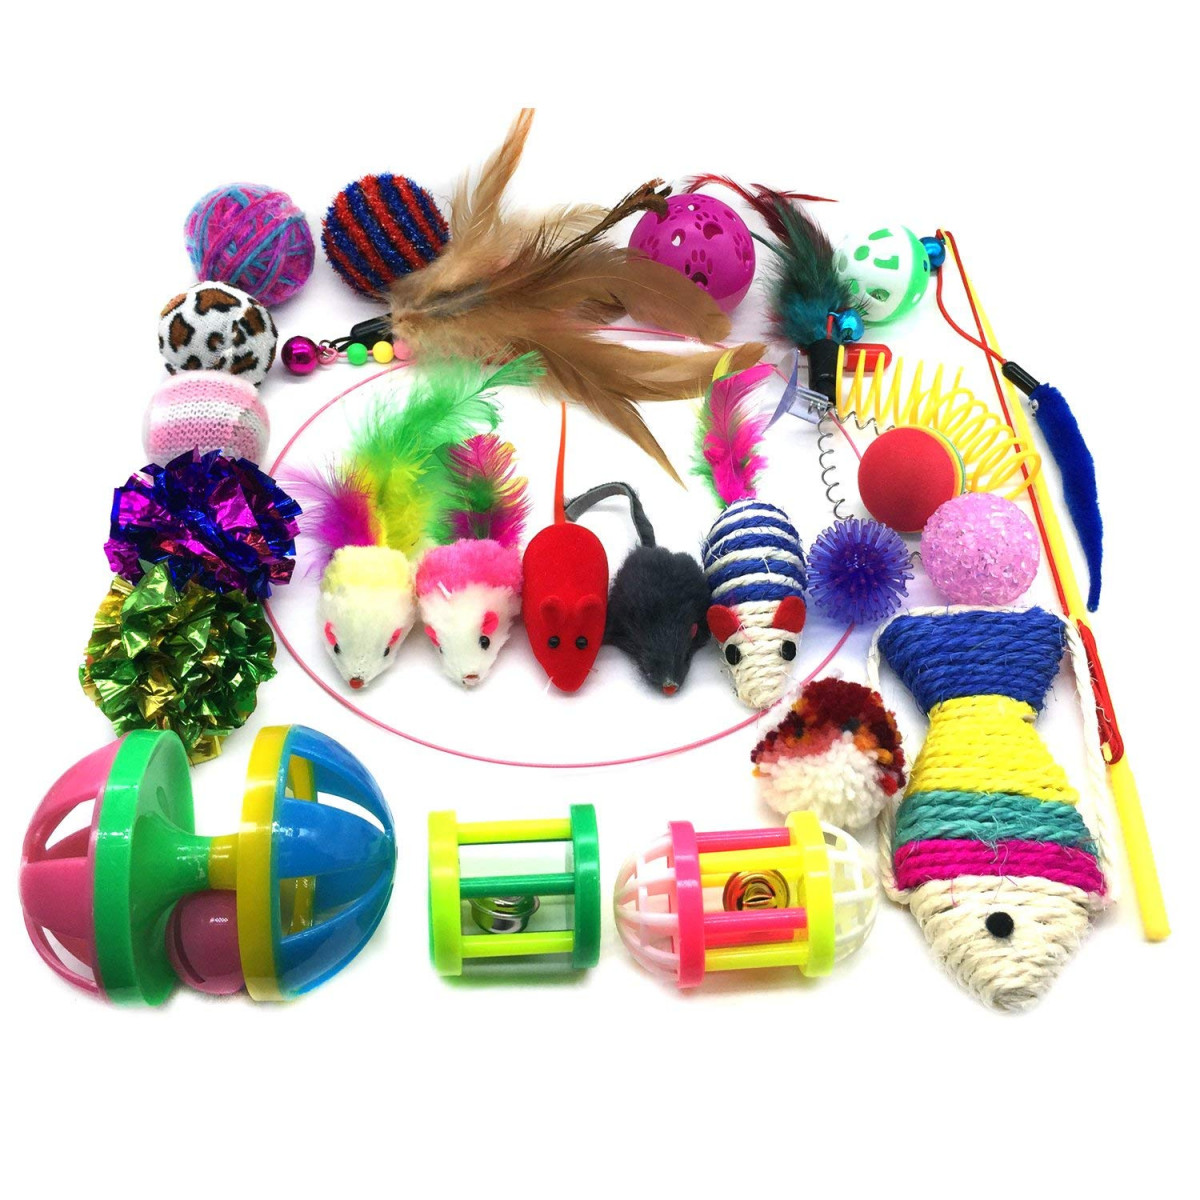 Crinkle Rainbow Balls Bells Toys for Puppy Kitty Interactive Feather Teaser Pietypet Cat Toys Kitten Catnip Toys Assorted Variety Catnip Toy Set Tumble Cage Mice 2 Way Tunnel Fluffy Mouse